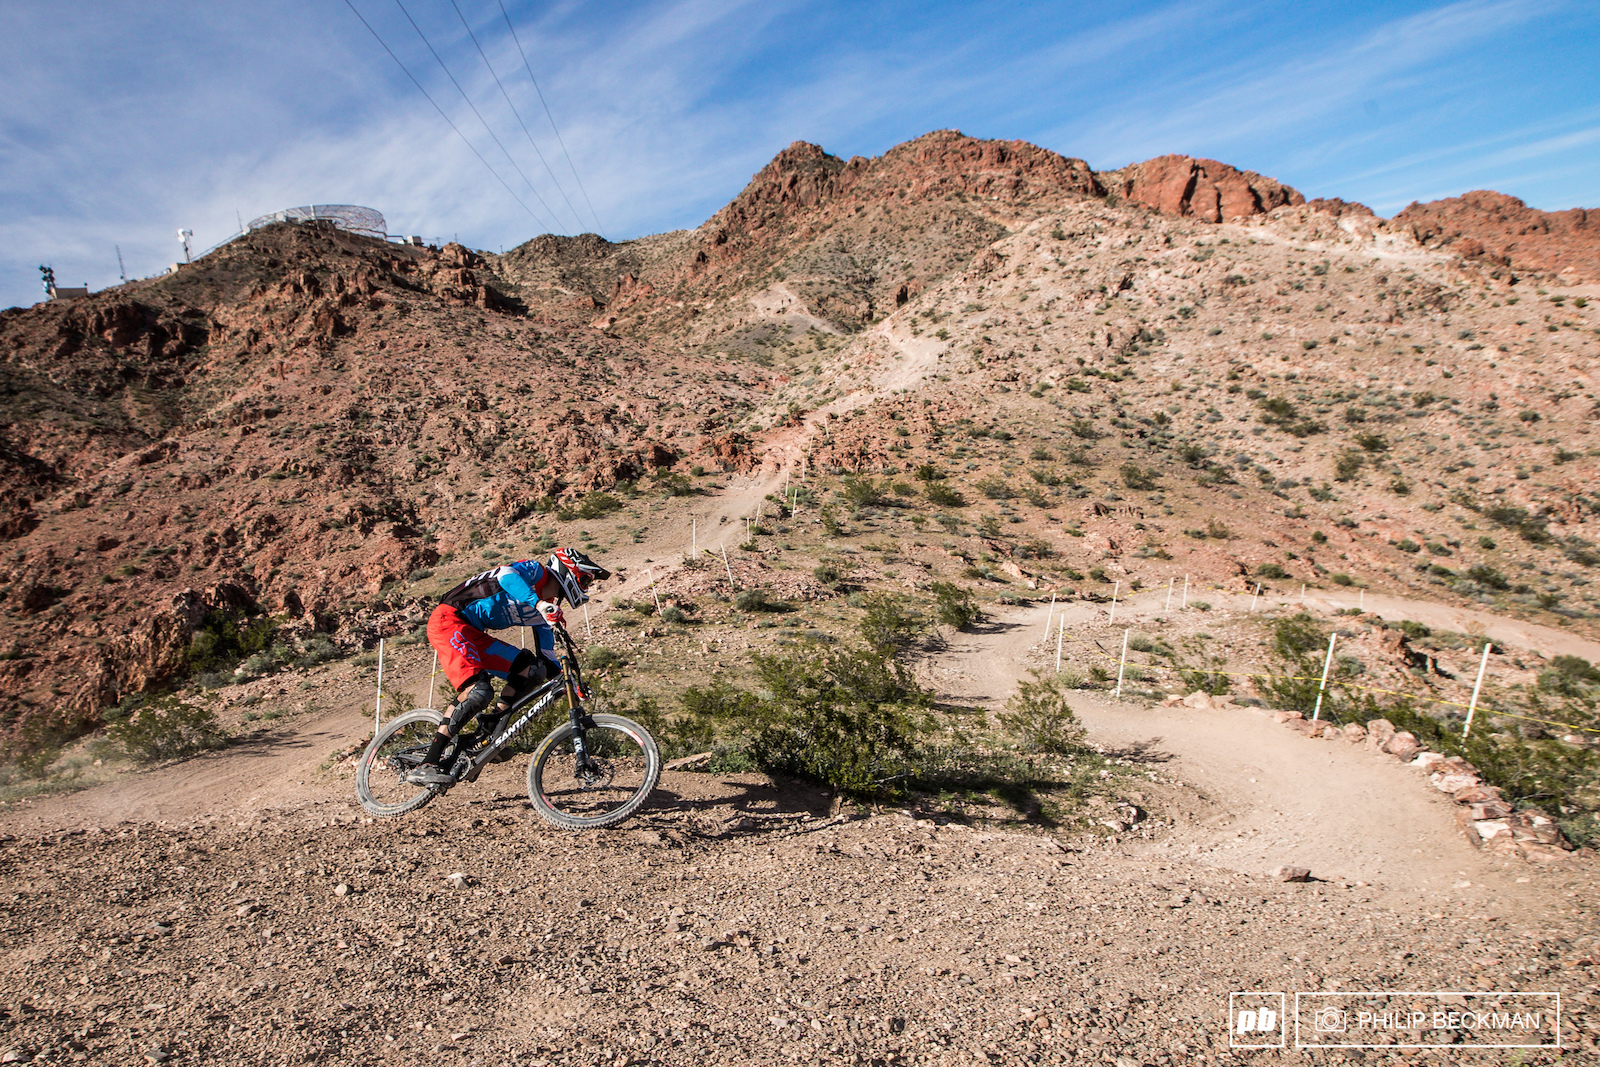 The Bootleg hill basically consists of two parts. The upper section is slow rocky steep and very technical. The lower section starting here is mostly wide-open desert singletrack.